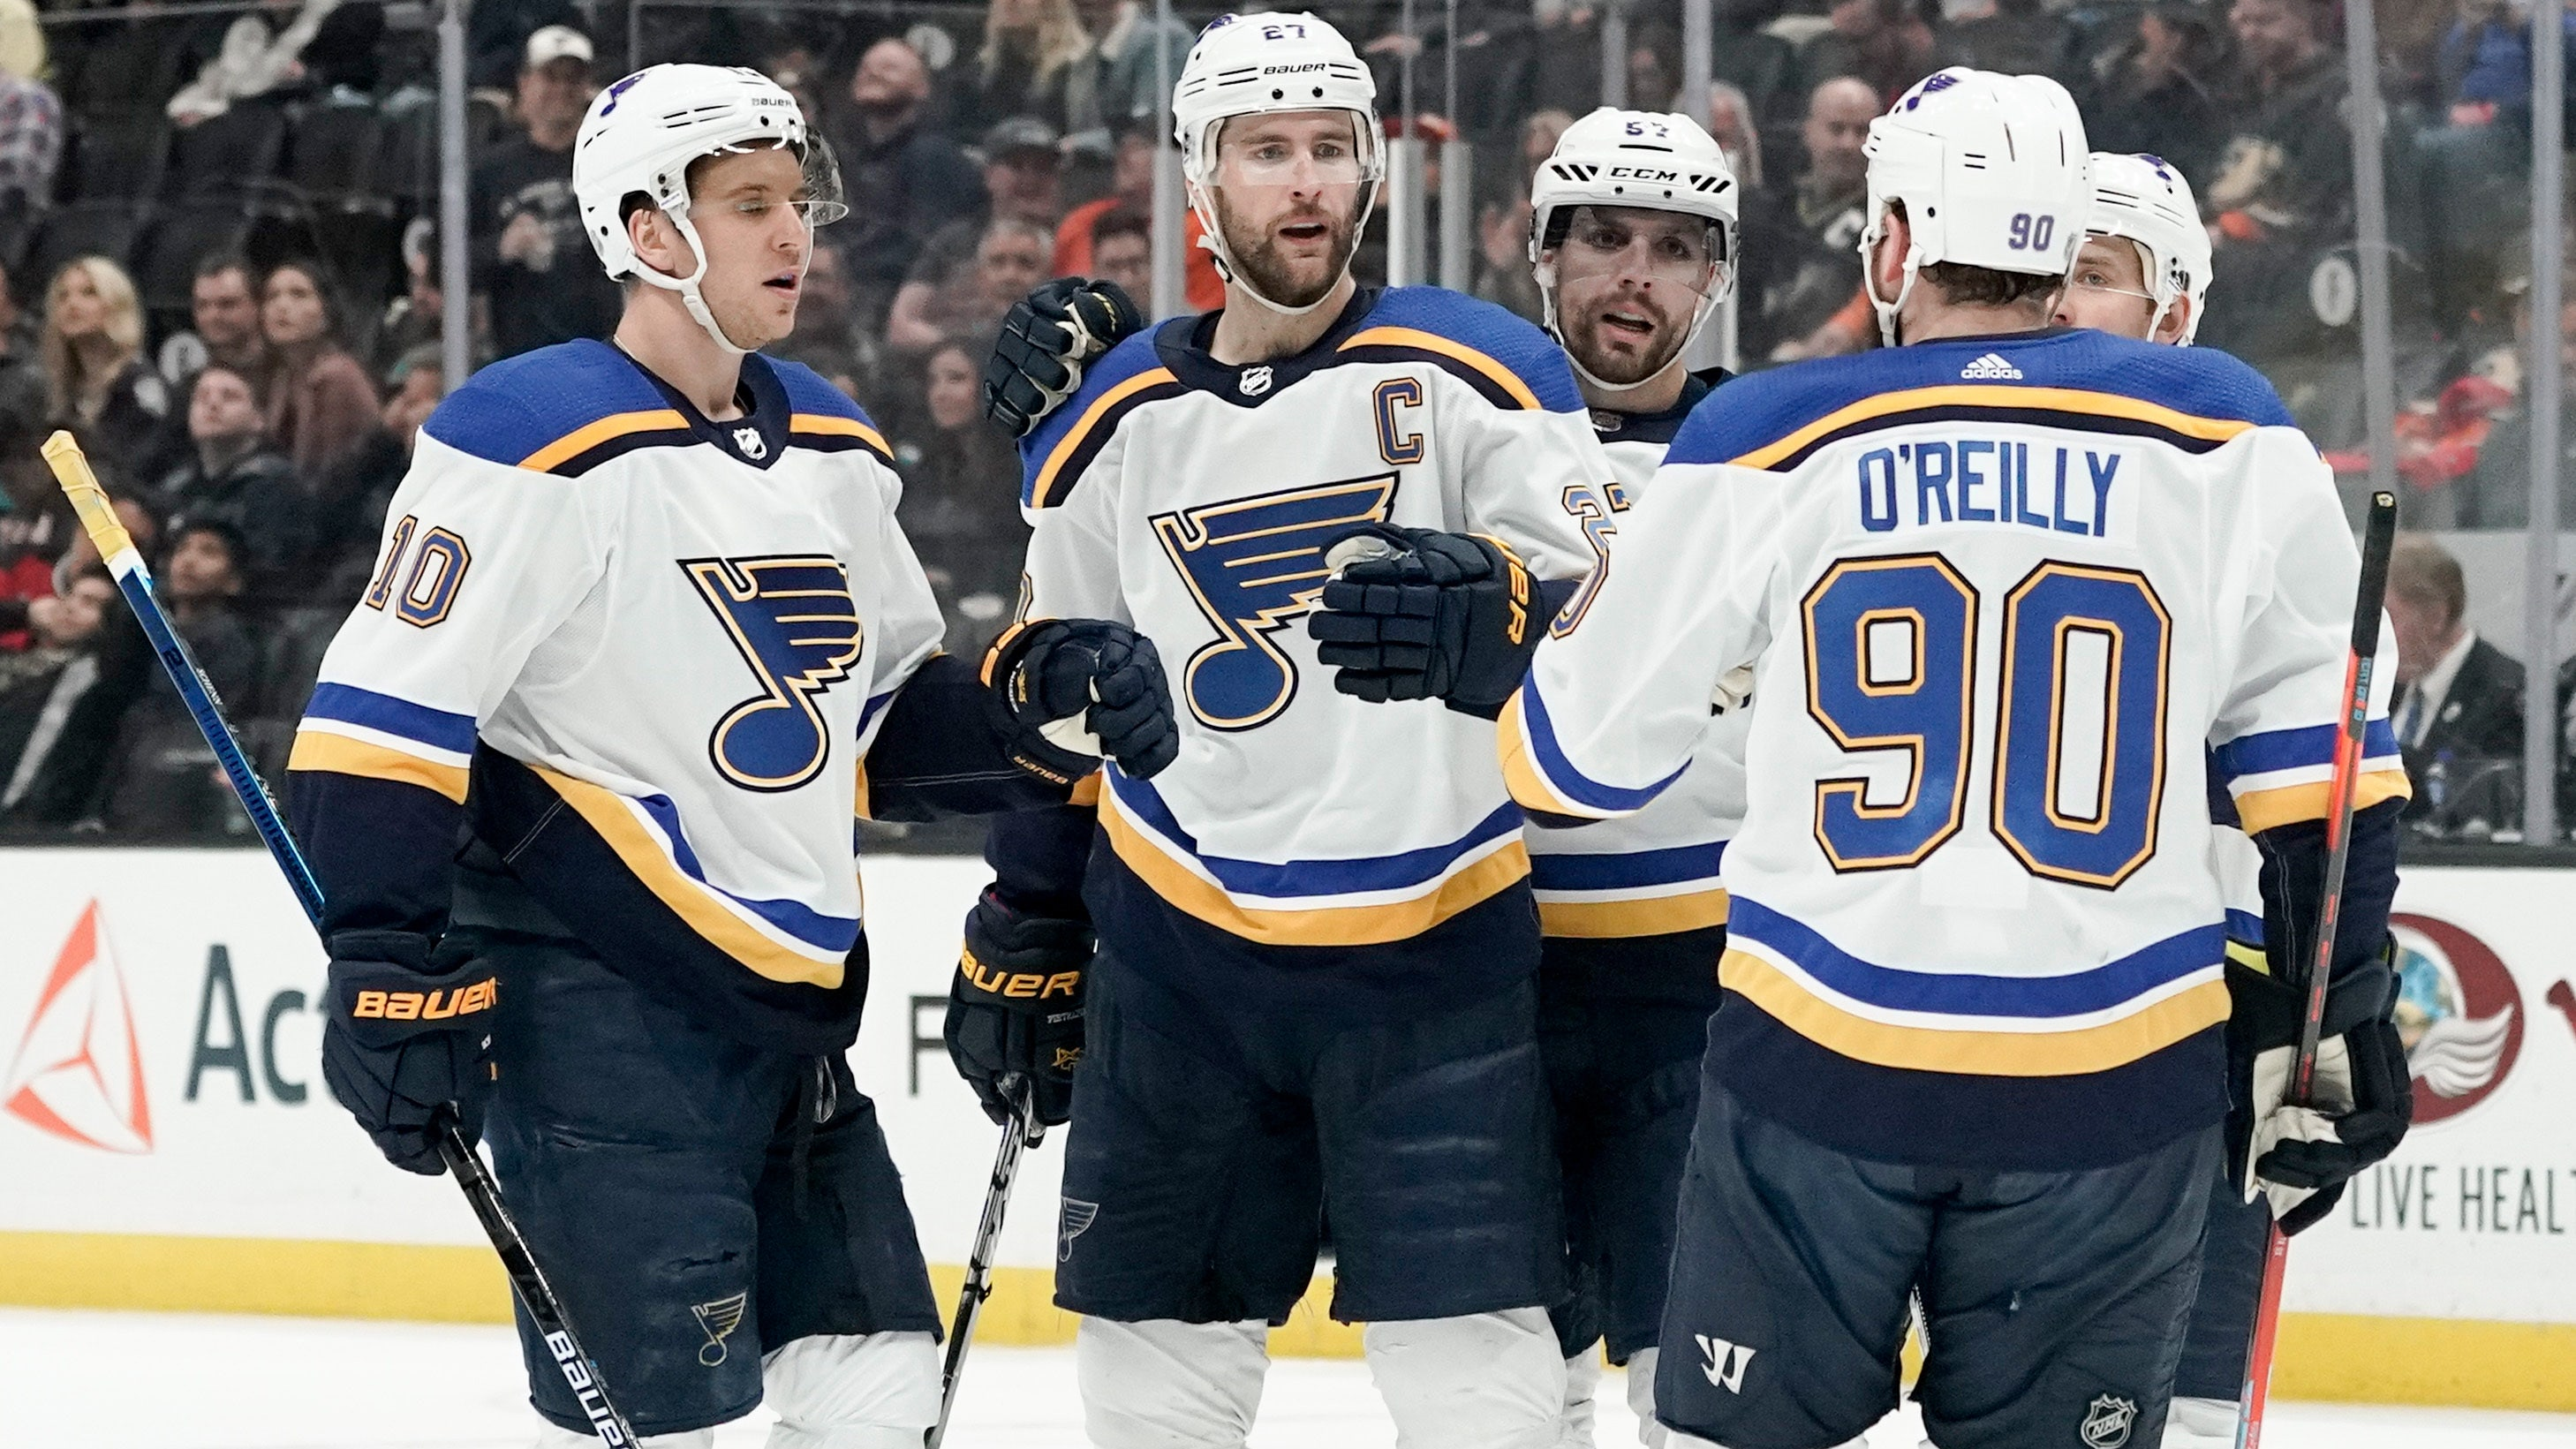 Pietrangelo S Two Goals Lift Blues To 4 2 Win Over Ducks Fox Sports